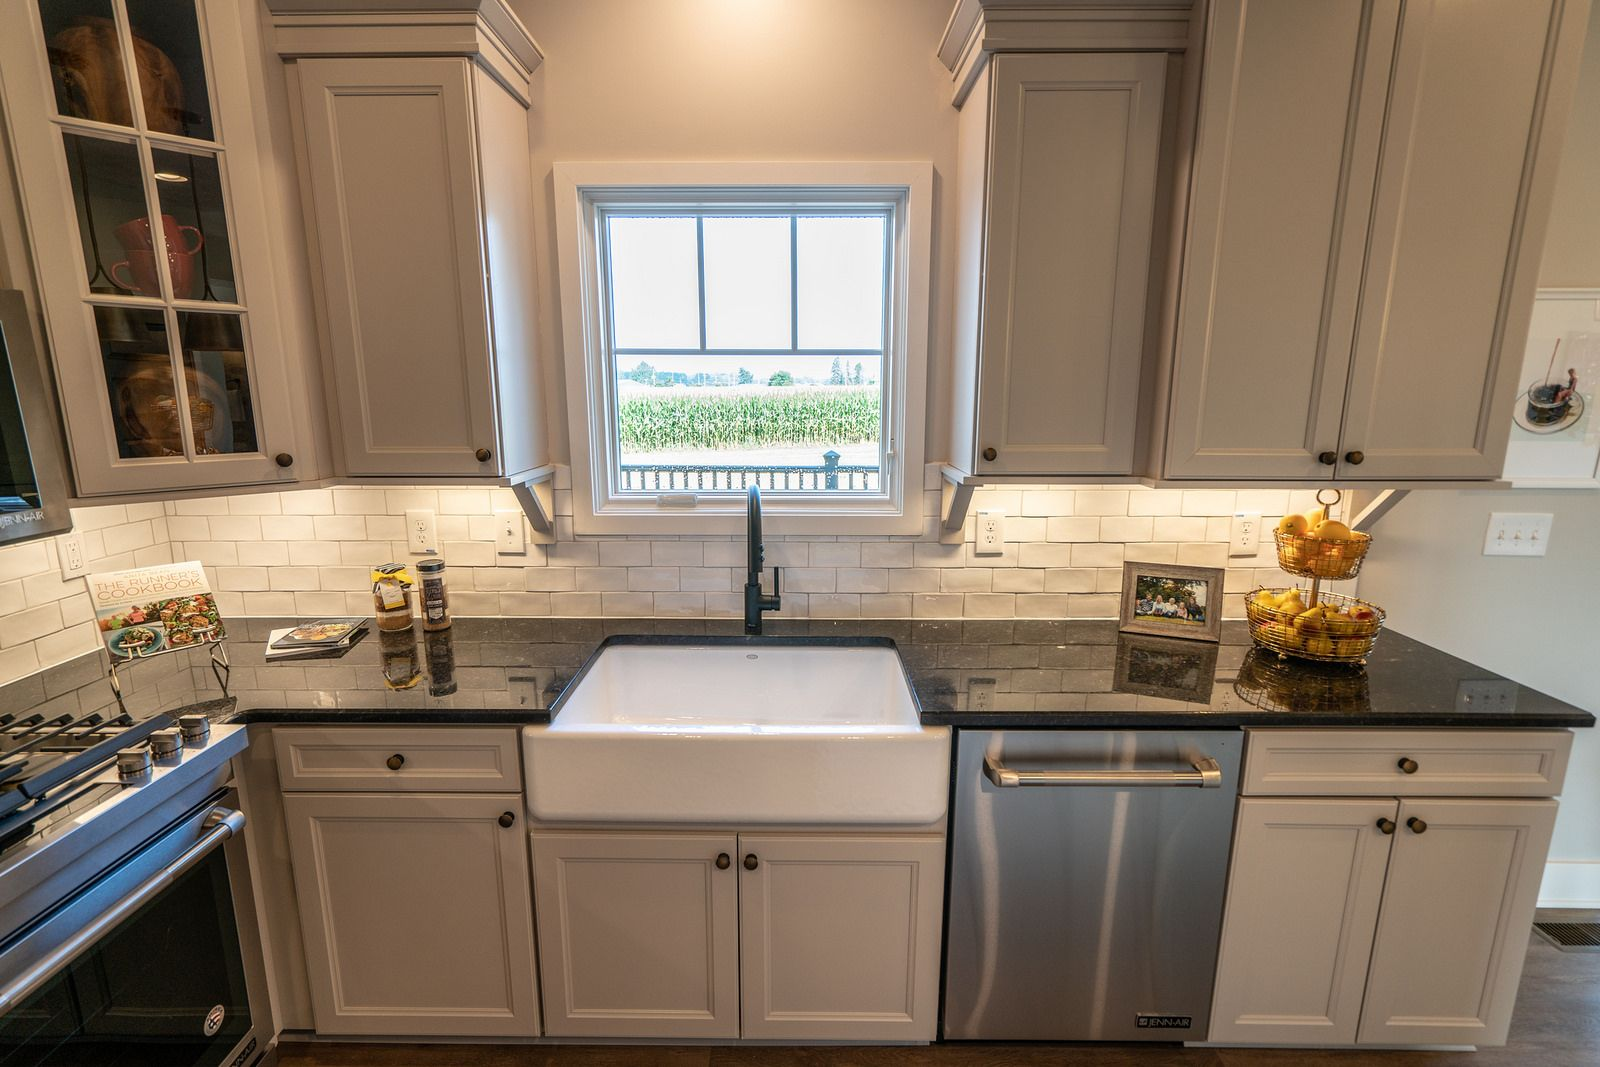 Brentwood Farmhouse Model In Hebron Ohio By Wayne Homes Customhome Newhomeconstruction Floorplan Twostor Wayne Homes New Home Construction Kitchen Decor